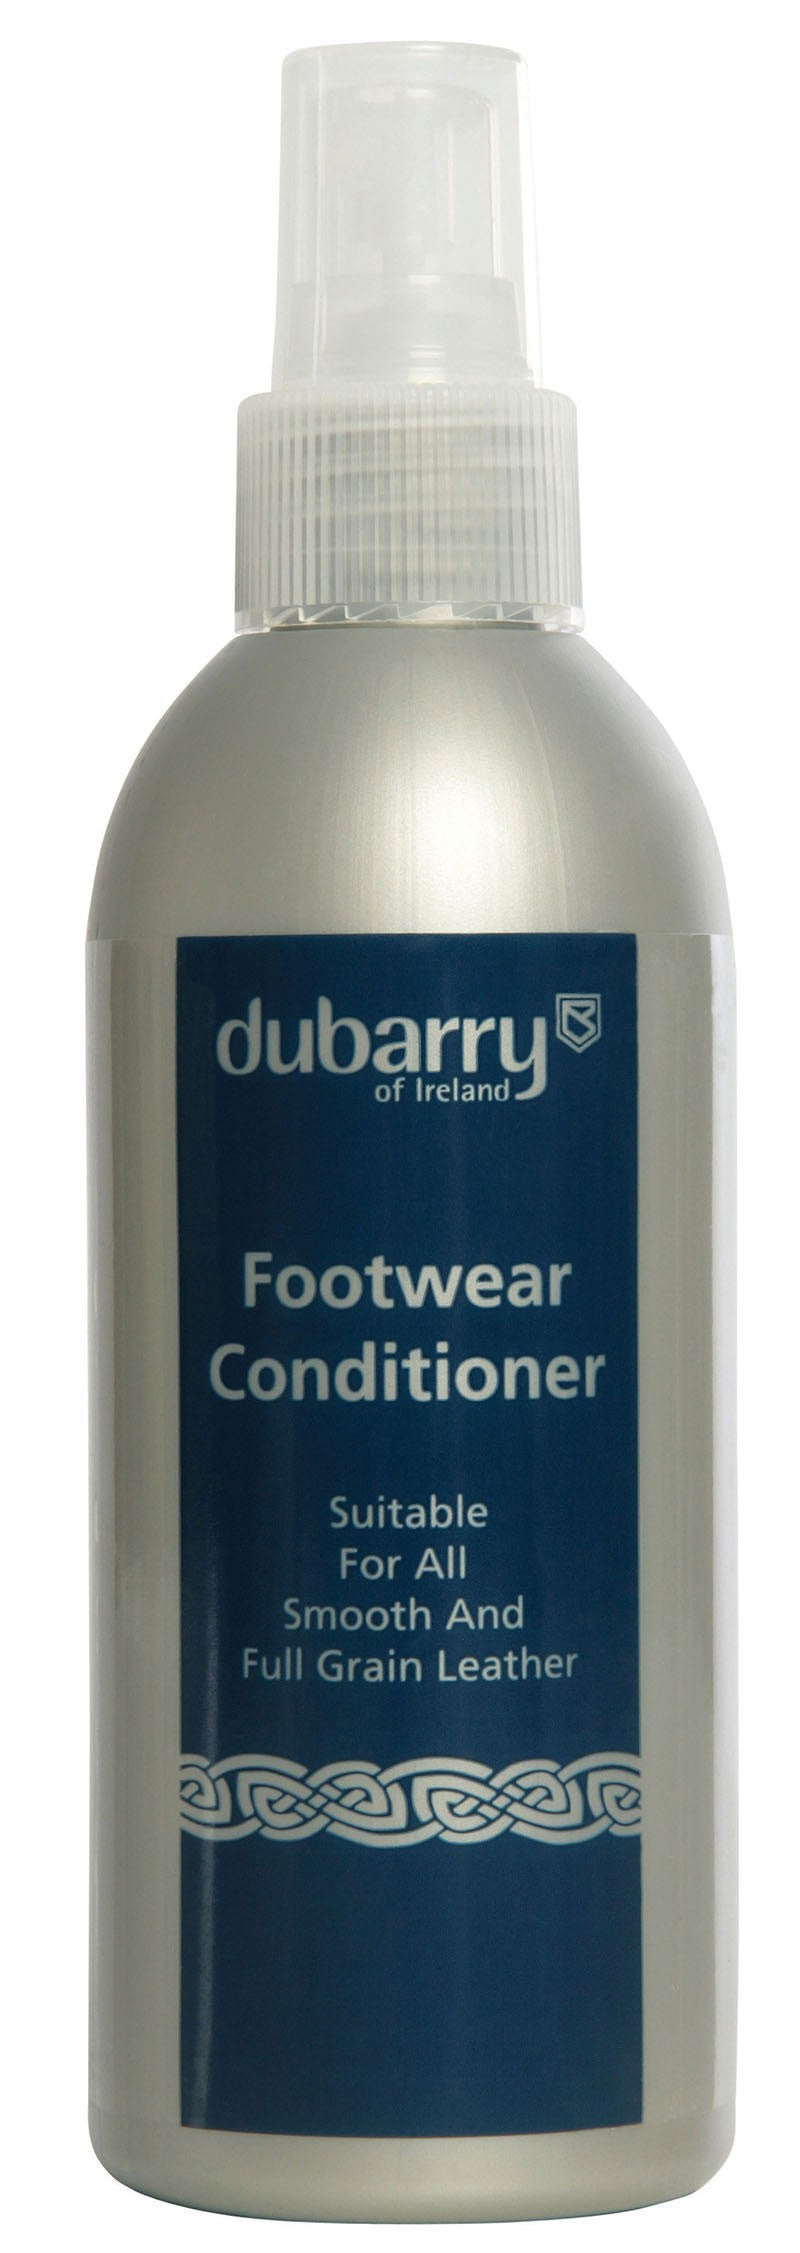 Dubarry Footwear Conditioner for Leather